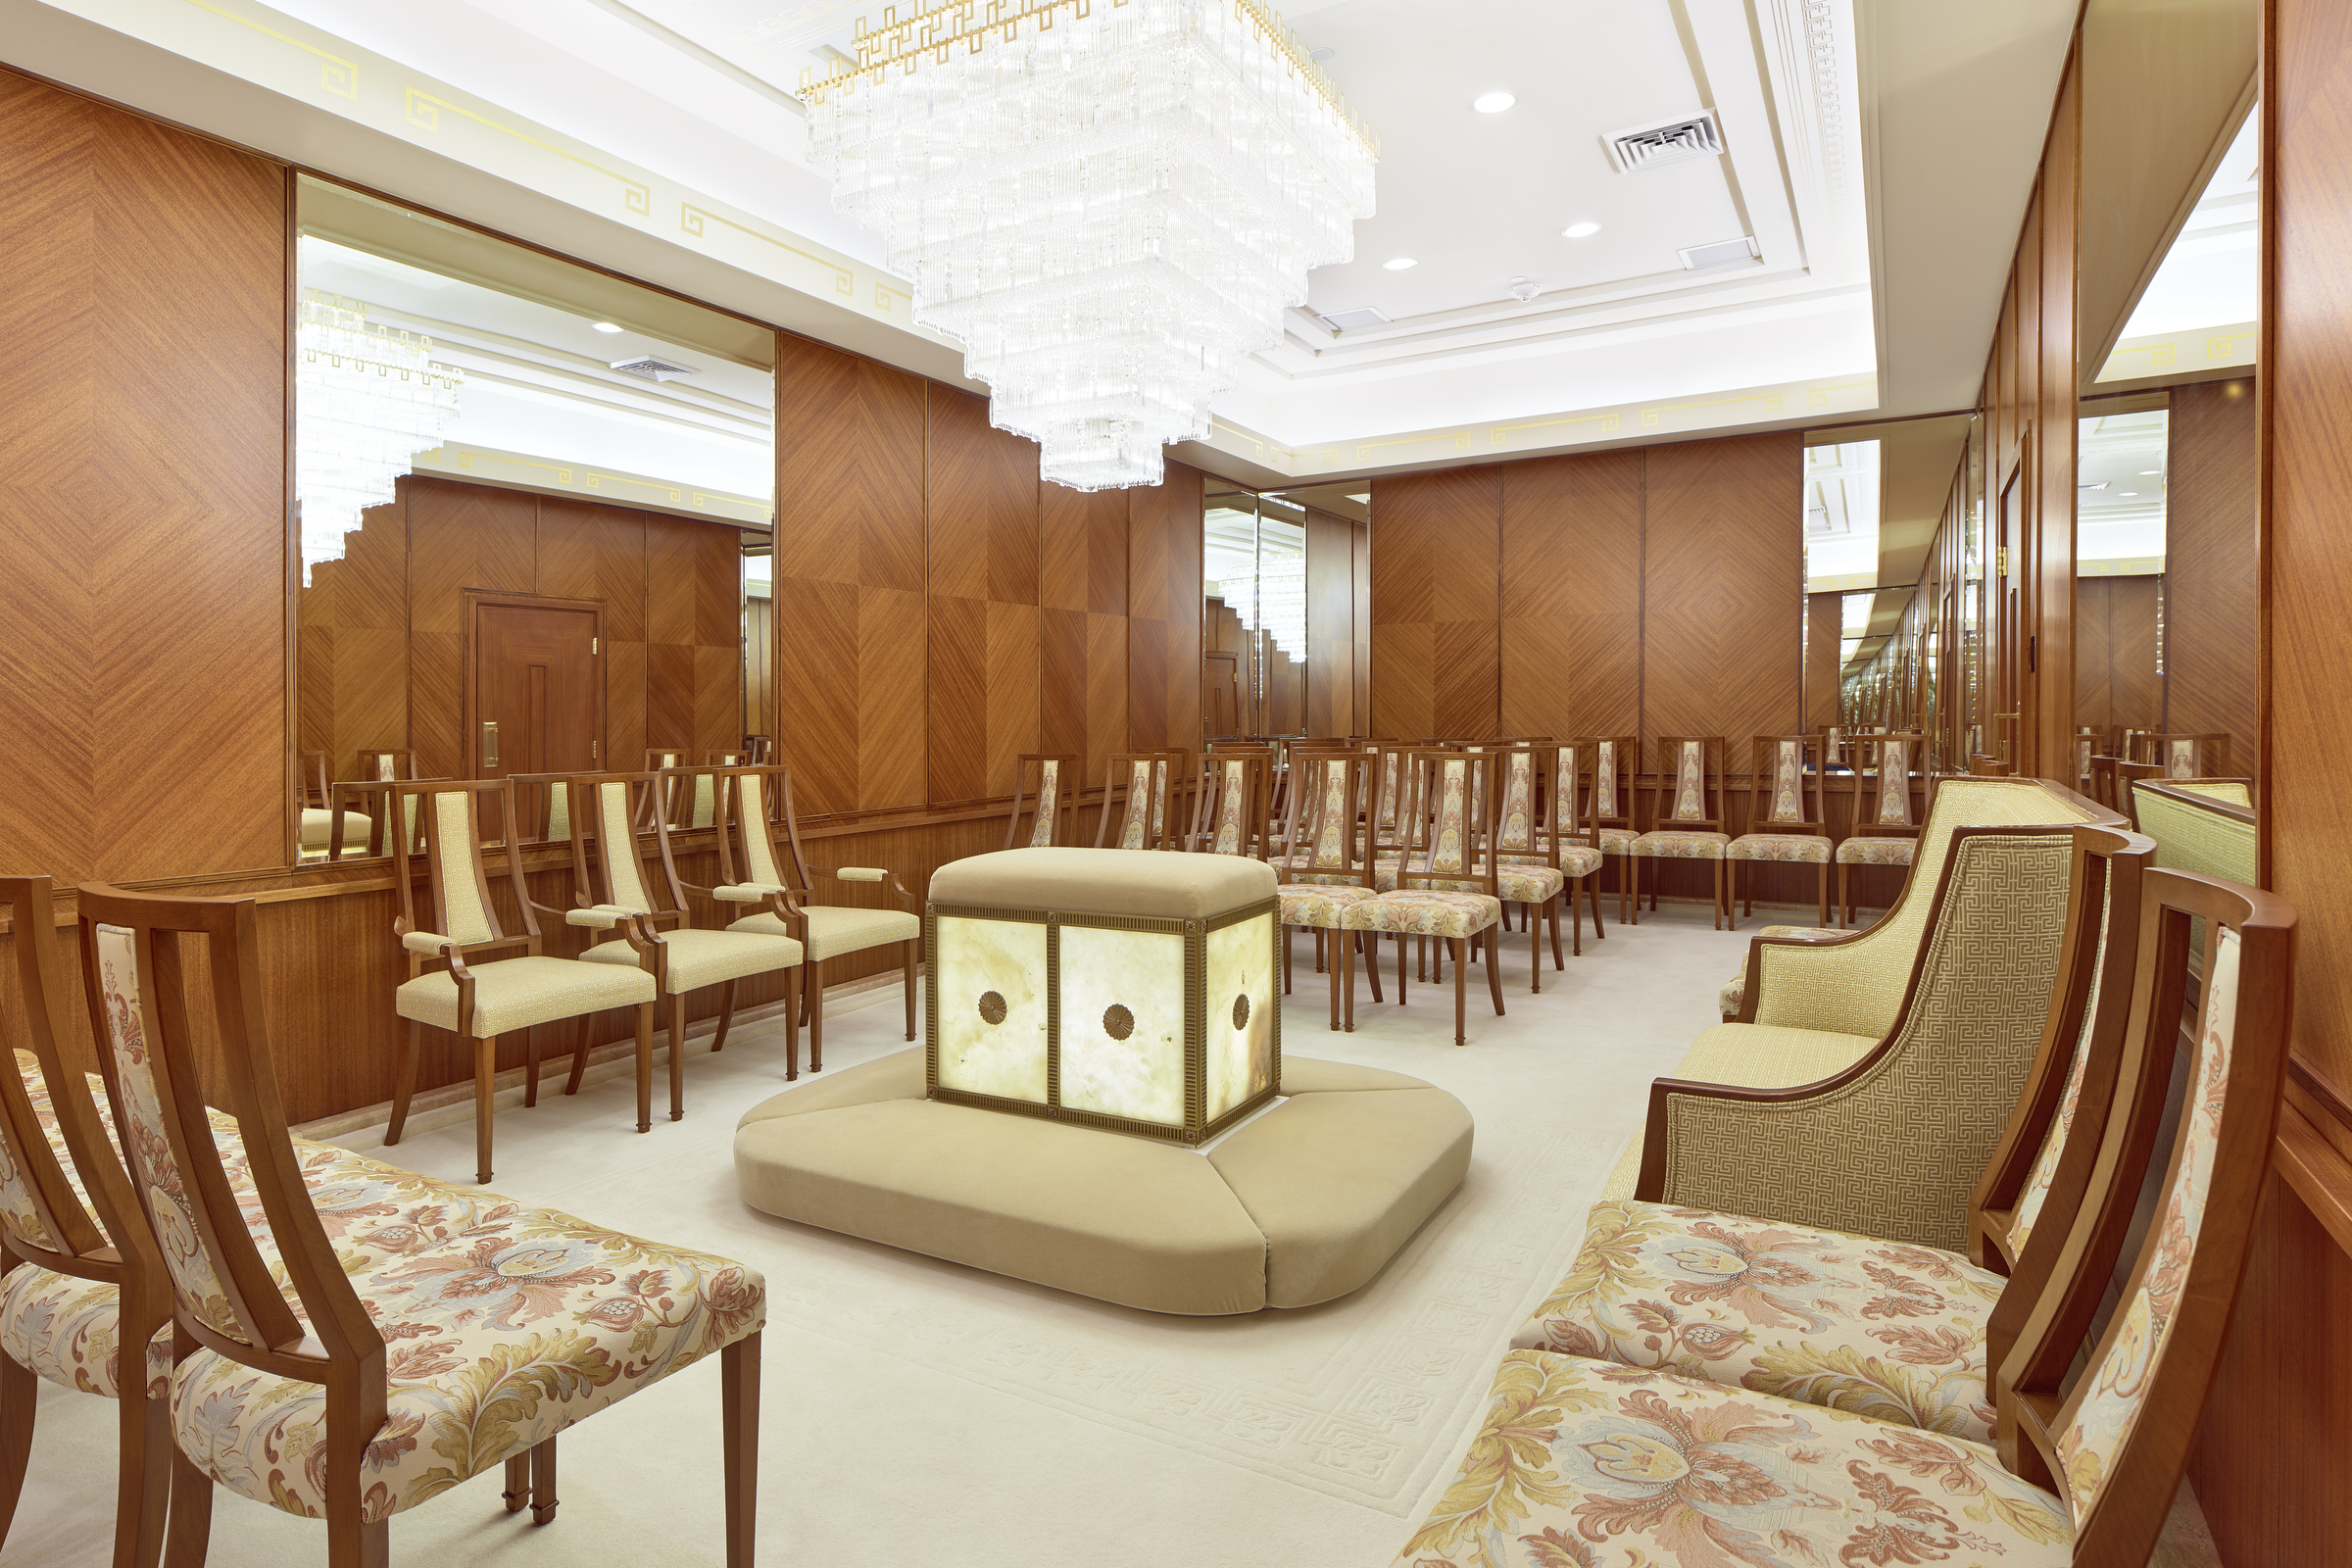 A sealing room in the newly renovated Oakland California Temple, of The Church of Jesus Christ of Latter-day Saints, in Oakland, Calif., on Monday, May 6, 2019.